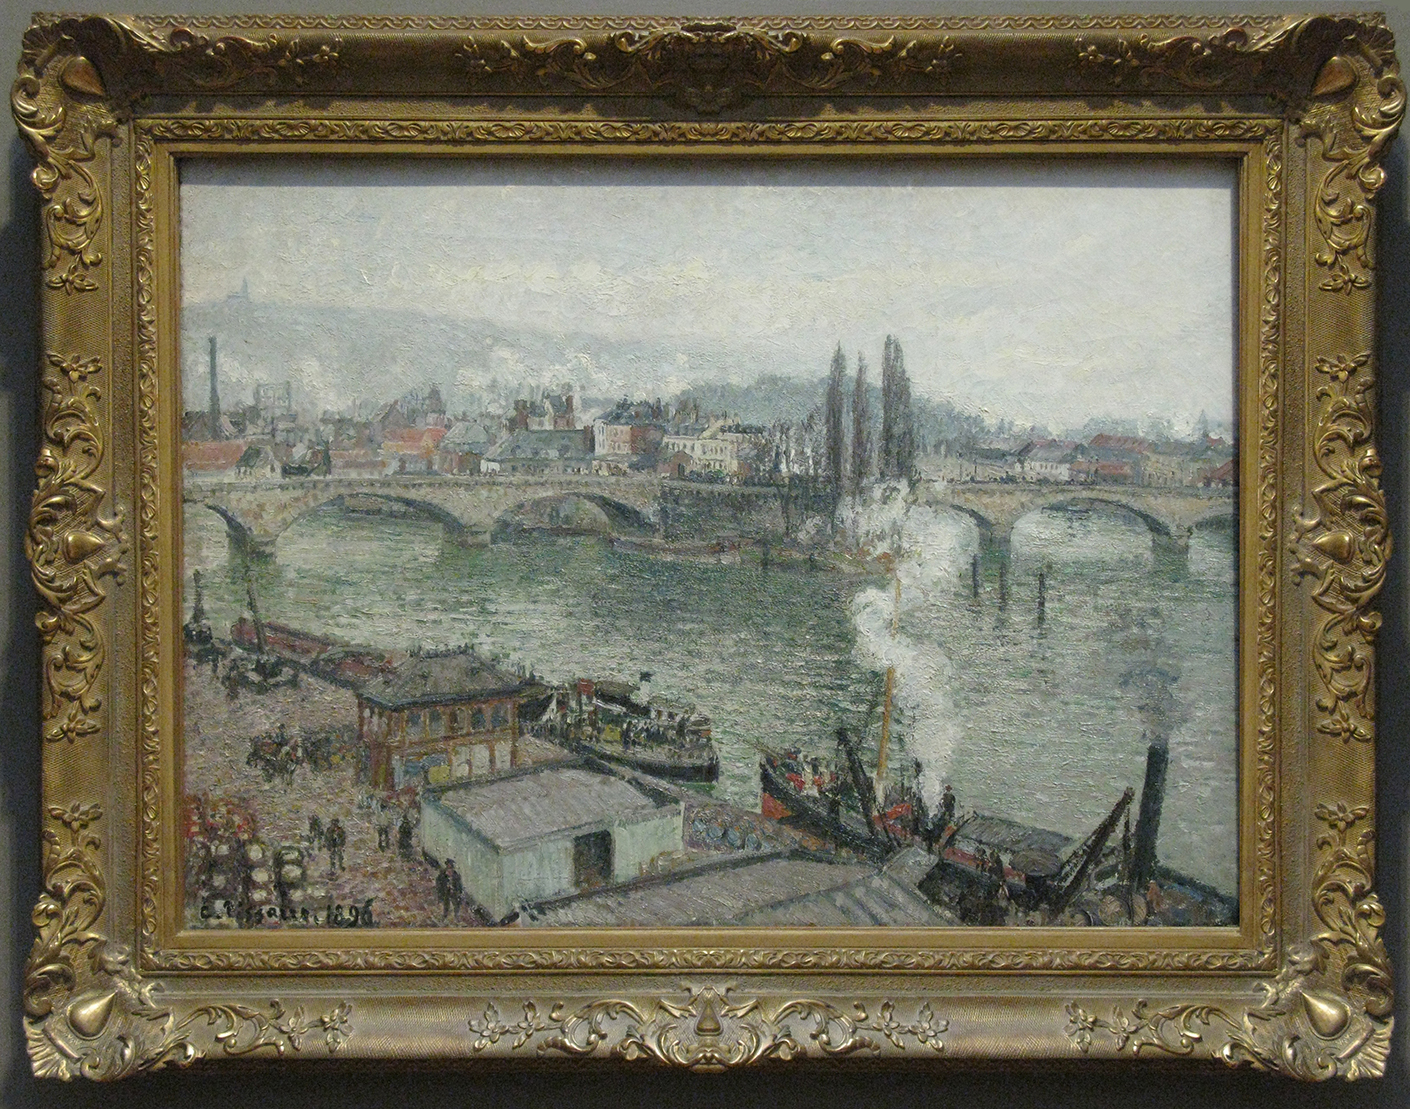 Camille Pissarro (1830-1903), The Stone Bridge in Rouen: dull weather, 1896, o/c, 66.1 x 91.5 cm., National Gallery of Canada